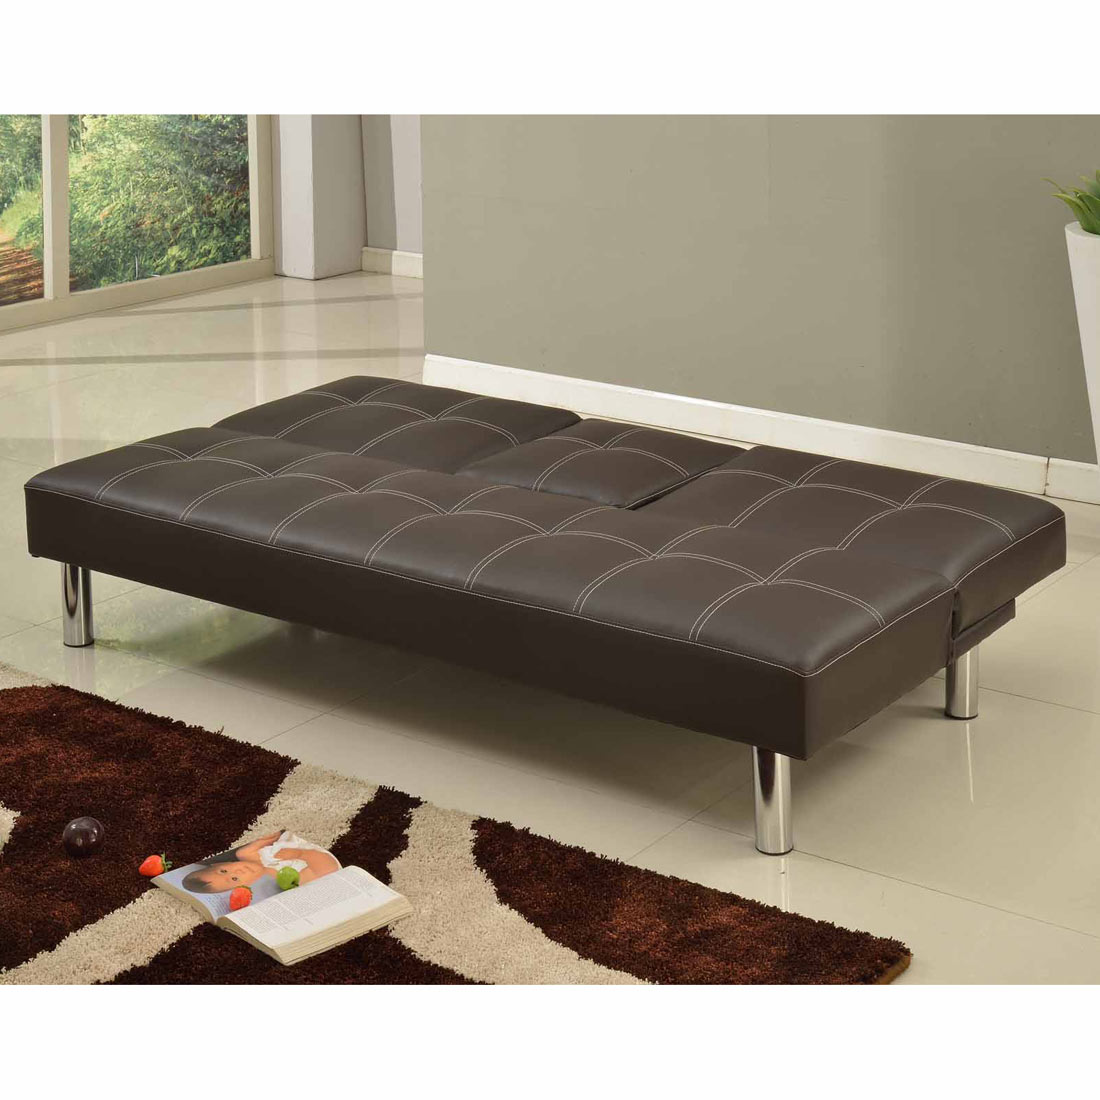 Cinemo 3 Seater Brown Sofa Bed Faux Leather W Fold Down Table Chrome Legs Ebay